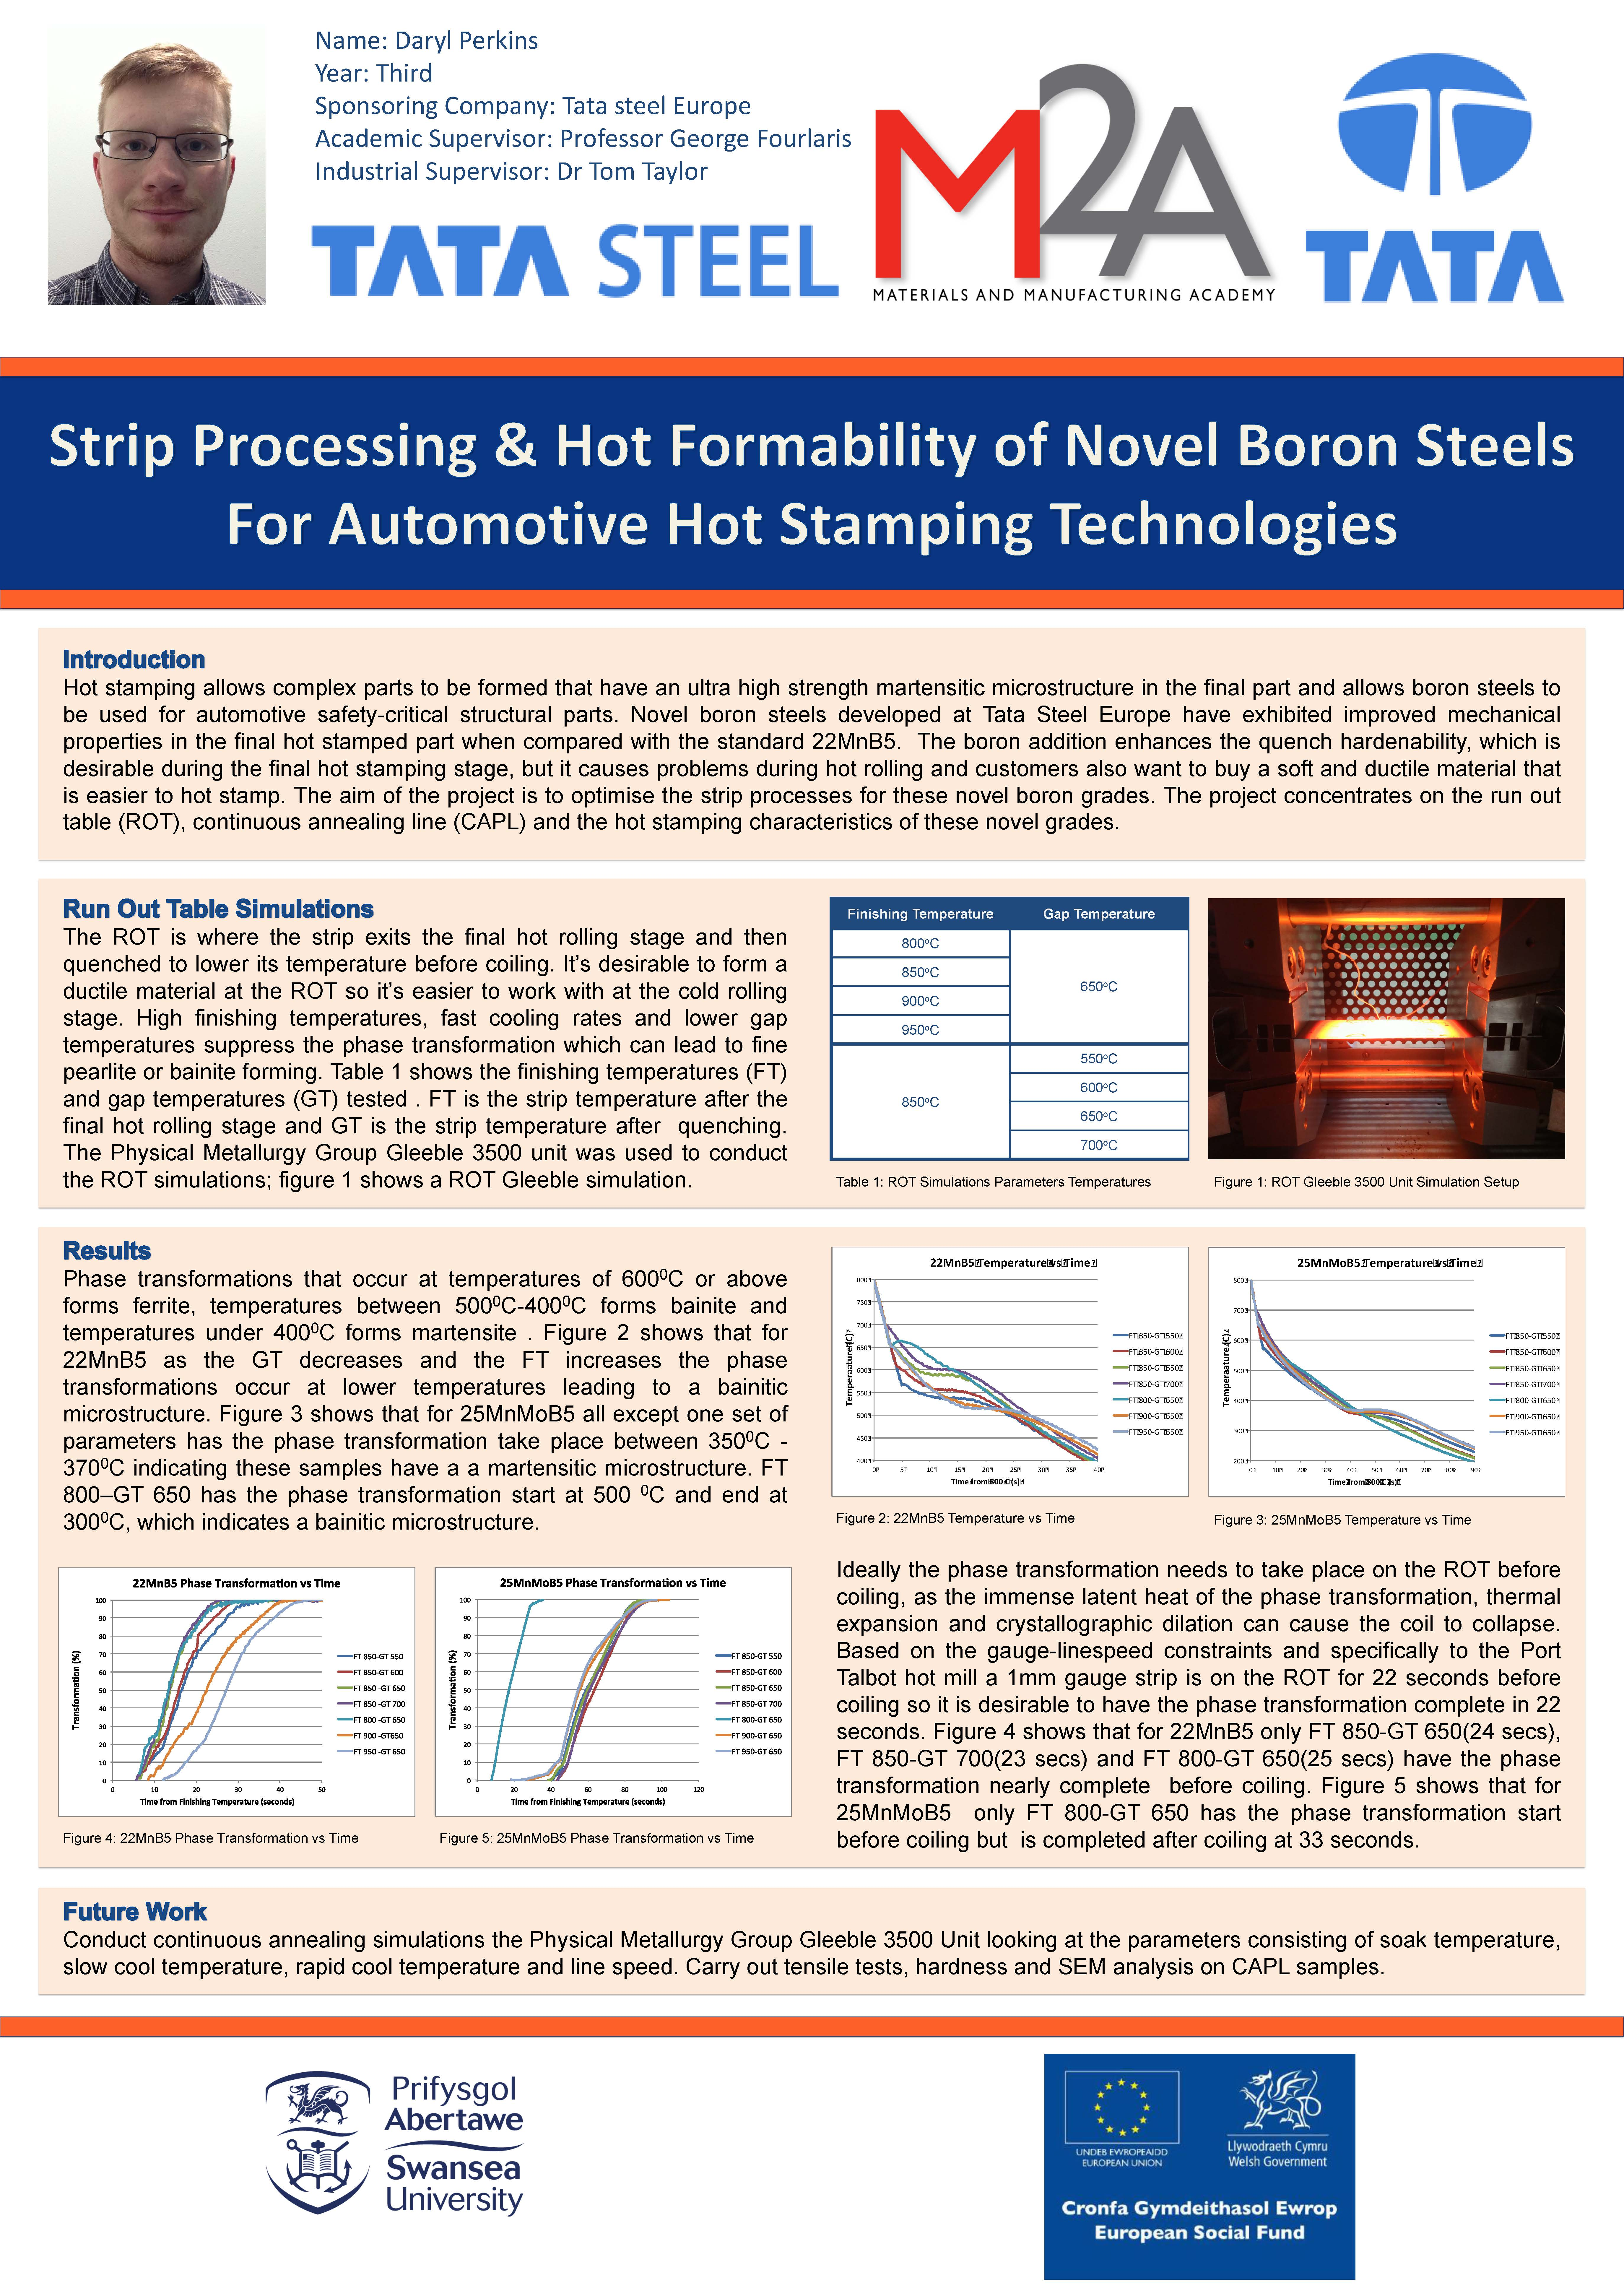 Strip Processing & Hot Formability of Novel Boron Steels For Automotive Hot Stamping Technologies